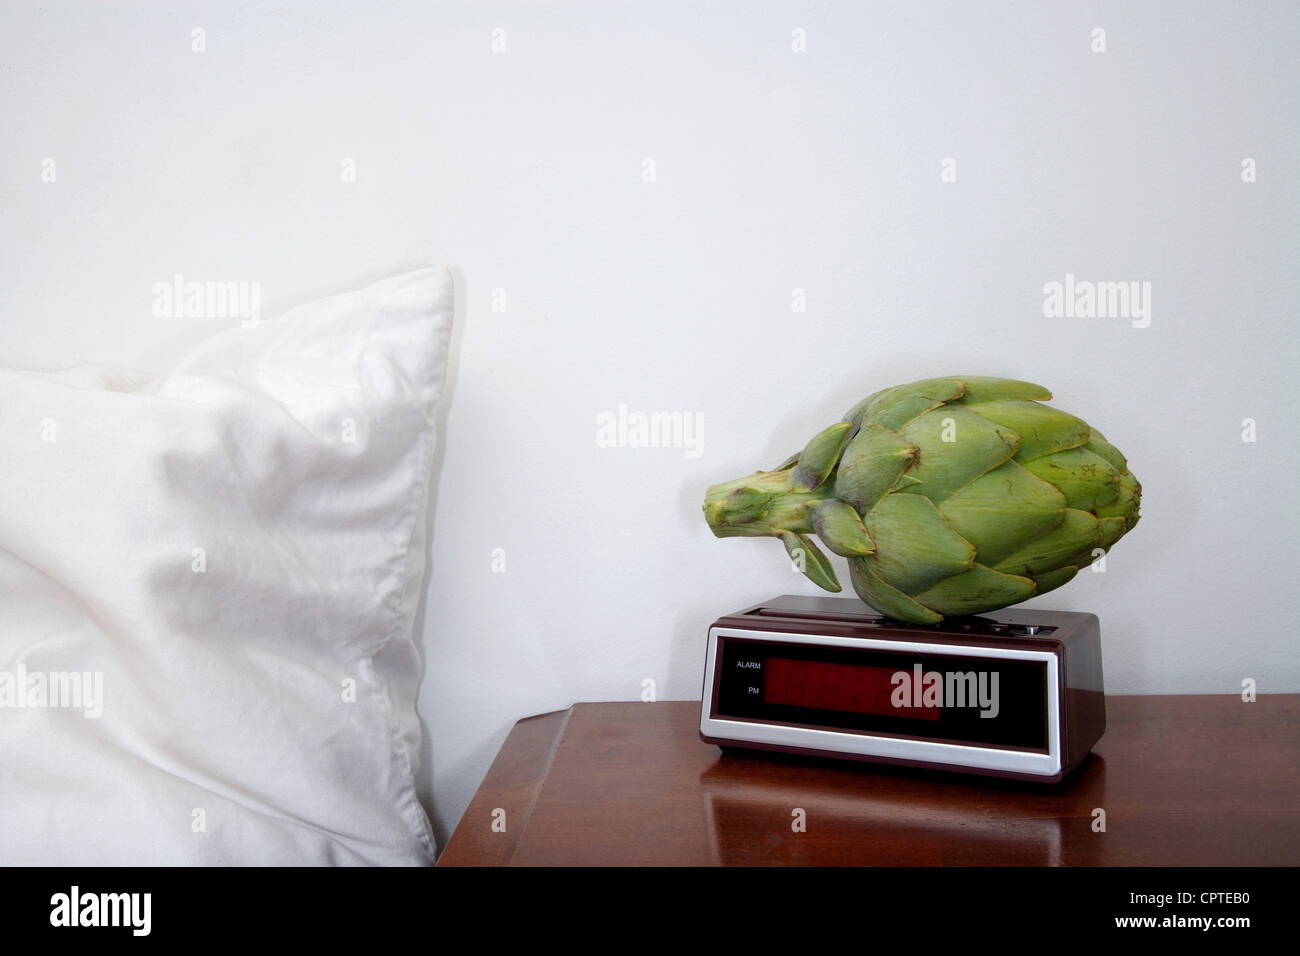 Artichoke on alarm clock - Stock Image